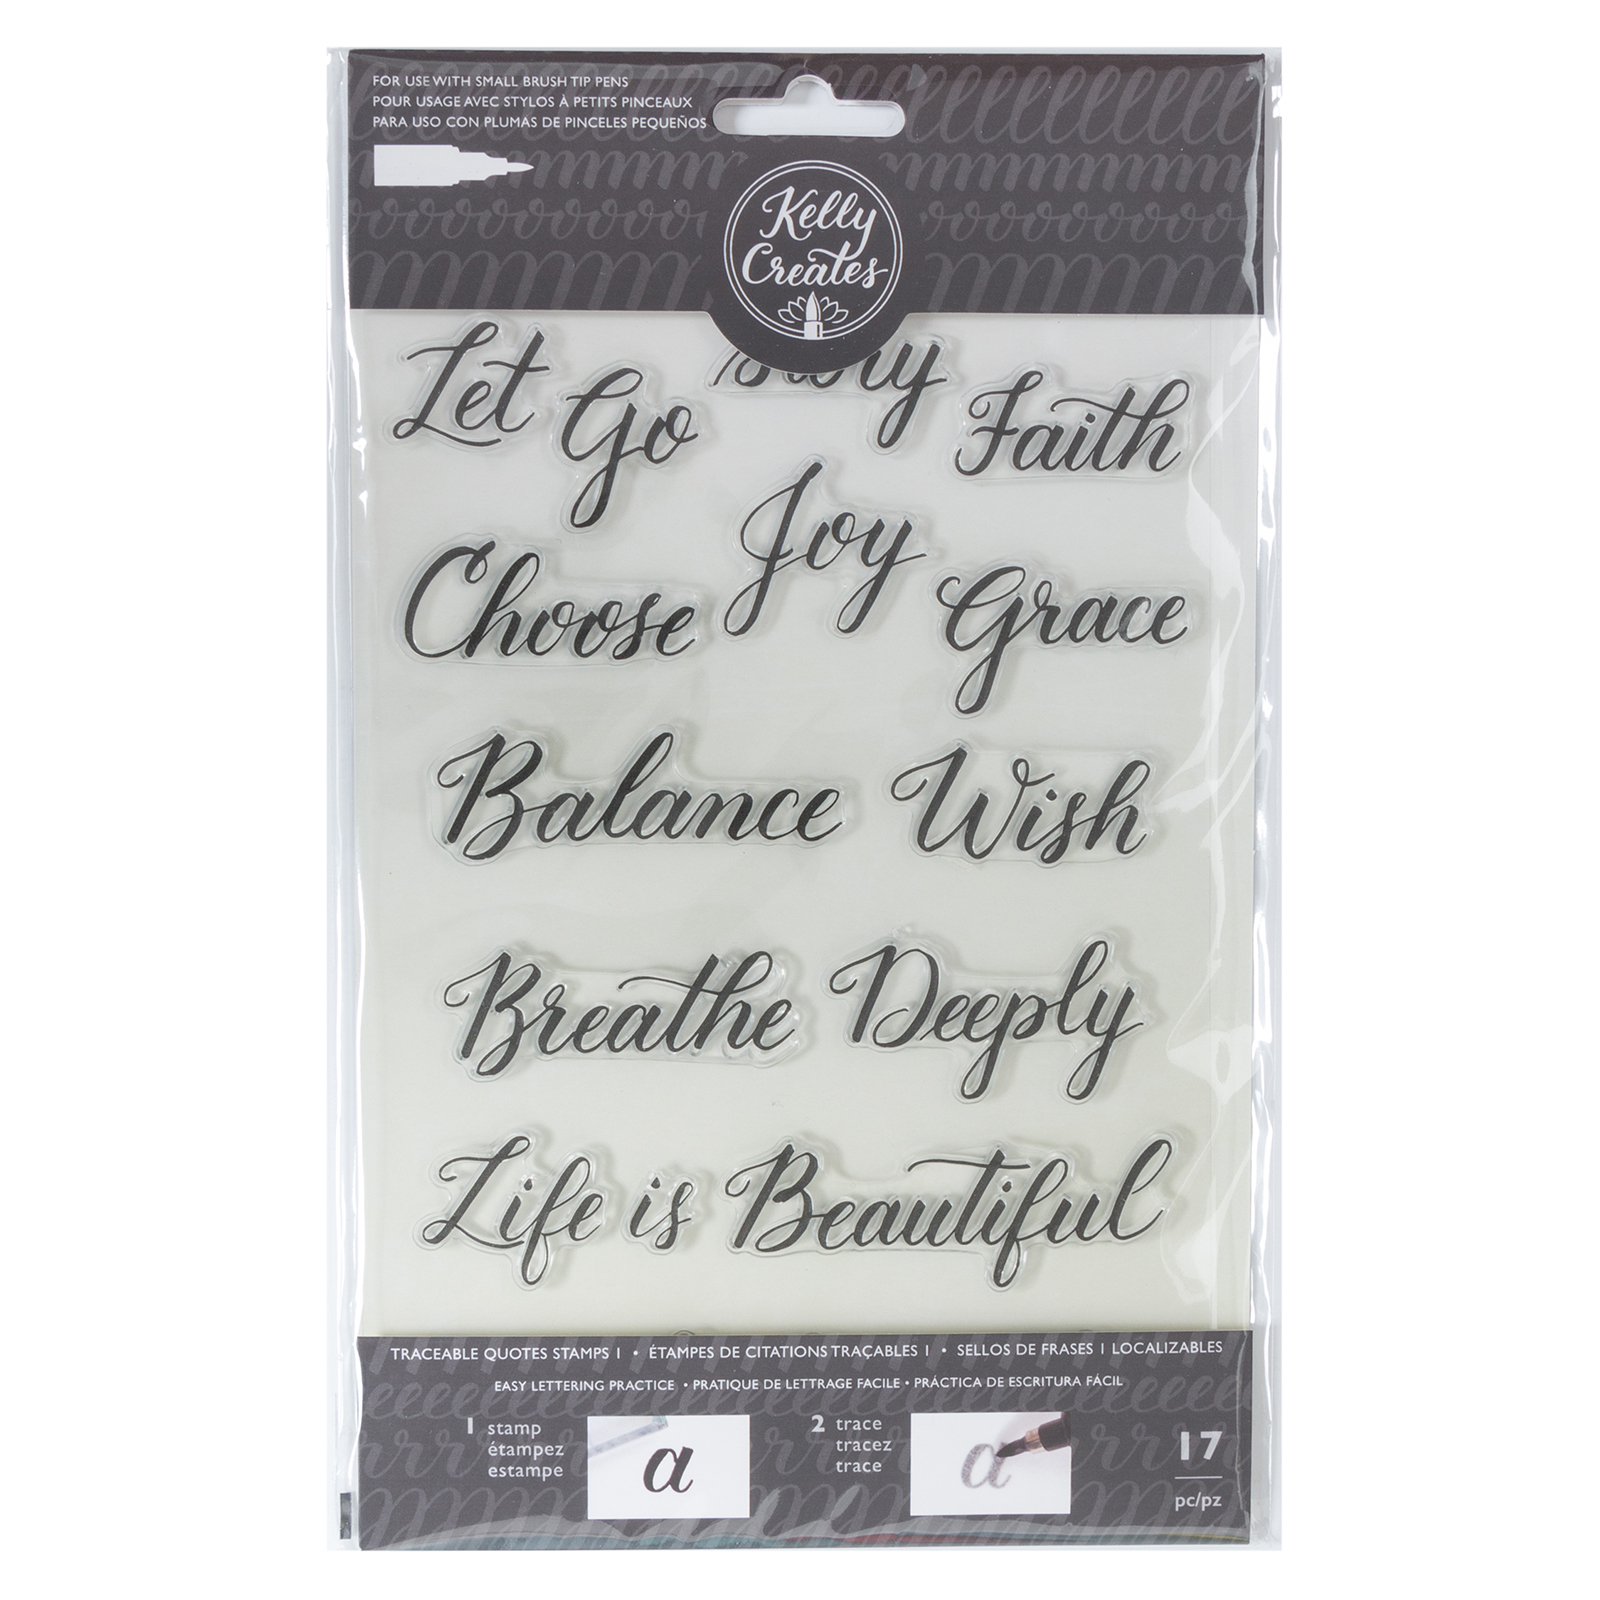 Kelly Creates Traceable Stamp Set - Quotes 1 by American Crafts